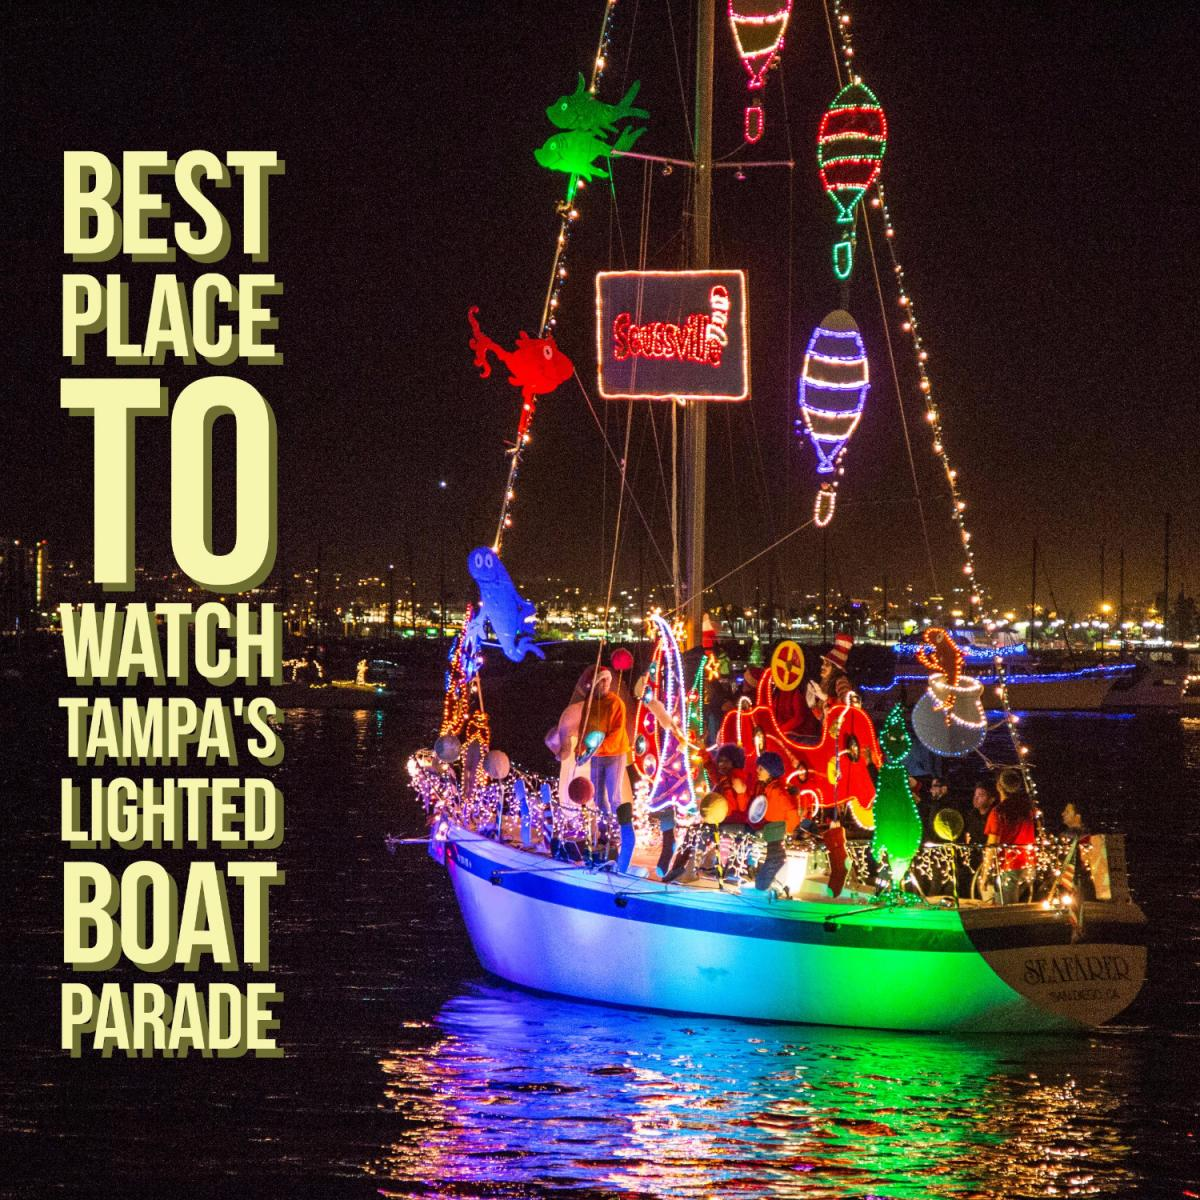 Christmas Parade Tampa 2020 Best Place to Watch Tampa's Lighted Boat Parade